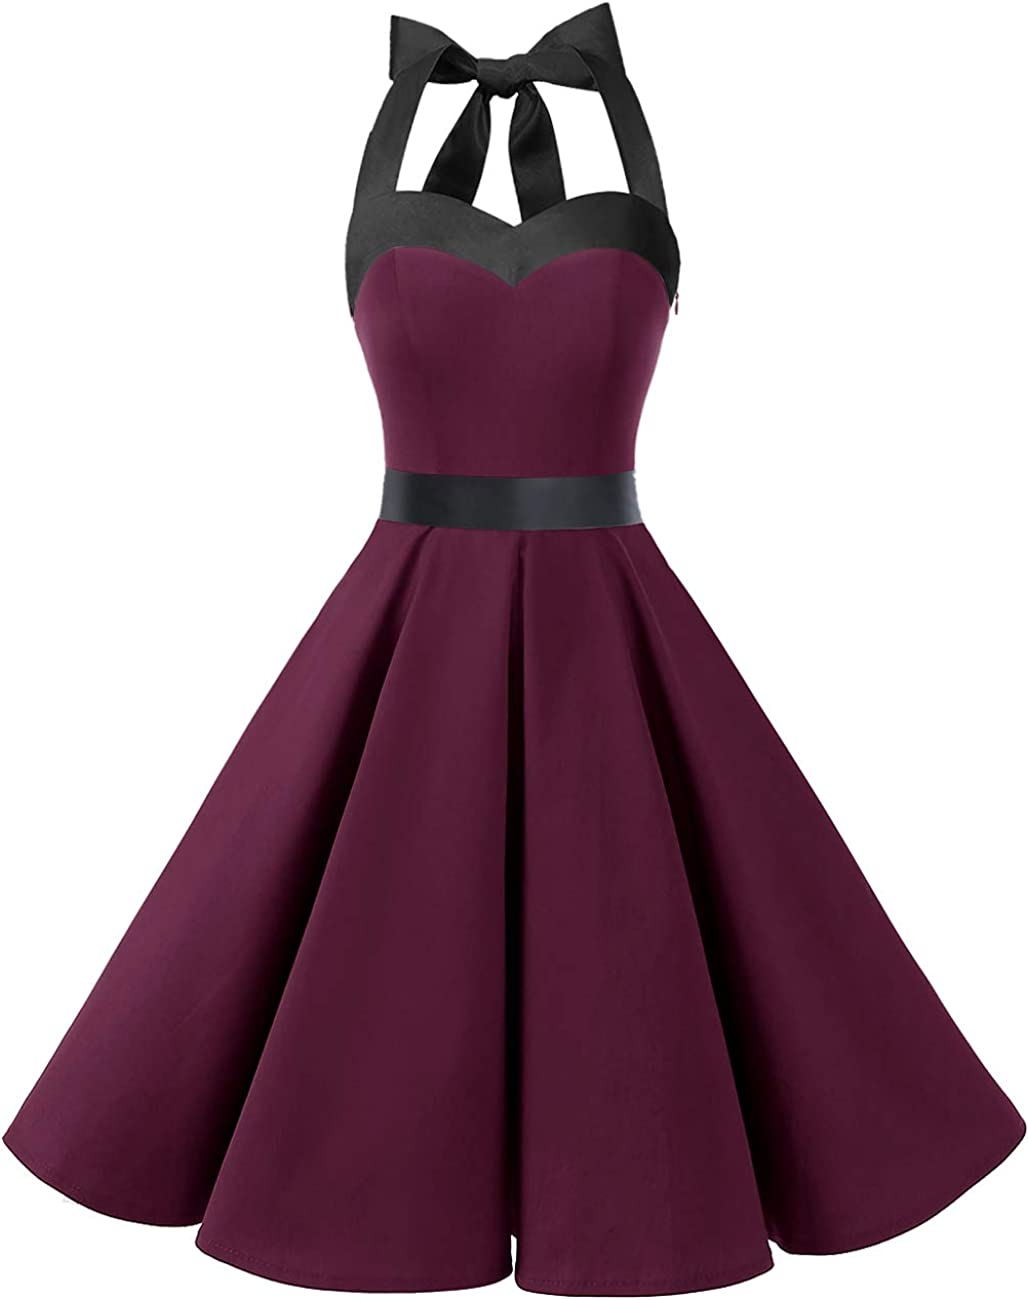 TALLA M. Dresstells® Halter 50s Rockabilly Polka Dots Audrey Dress Retro Cocktail Dress Burgundy Black M